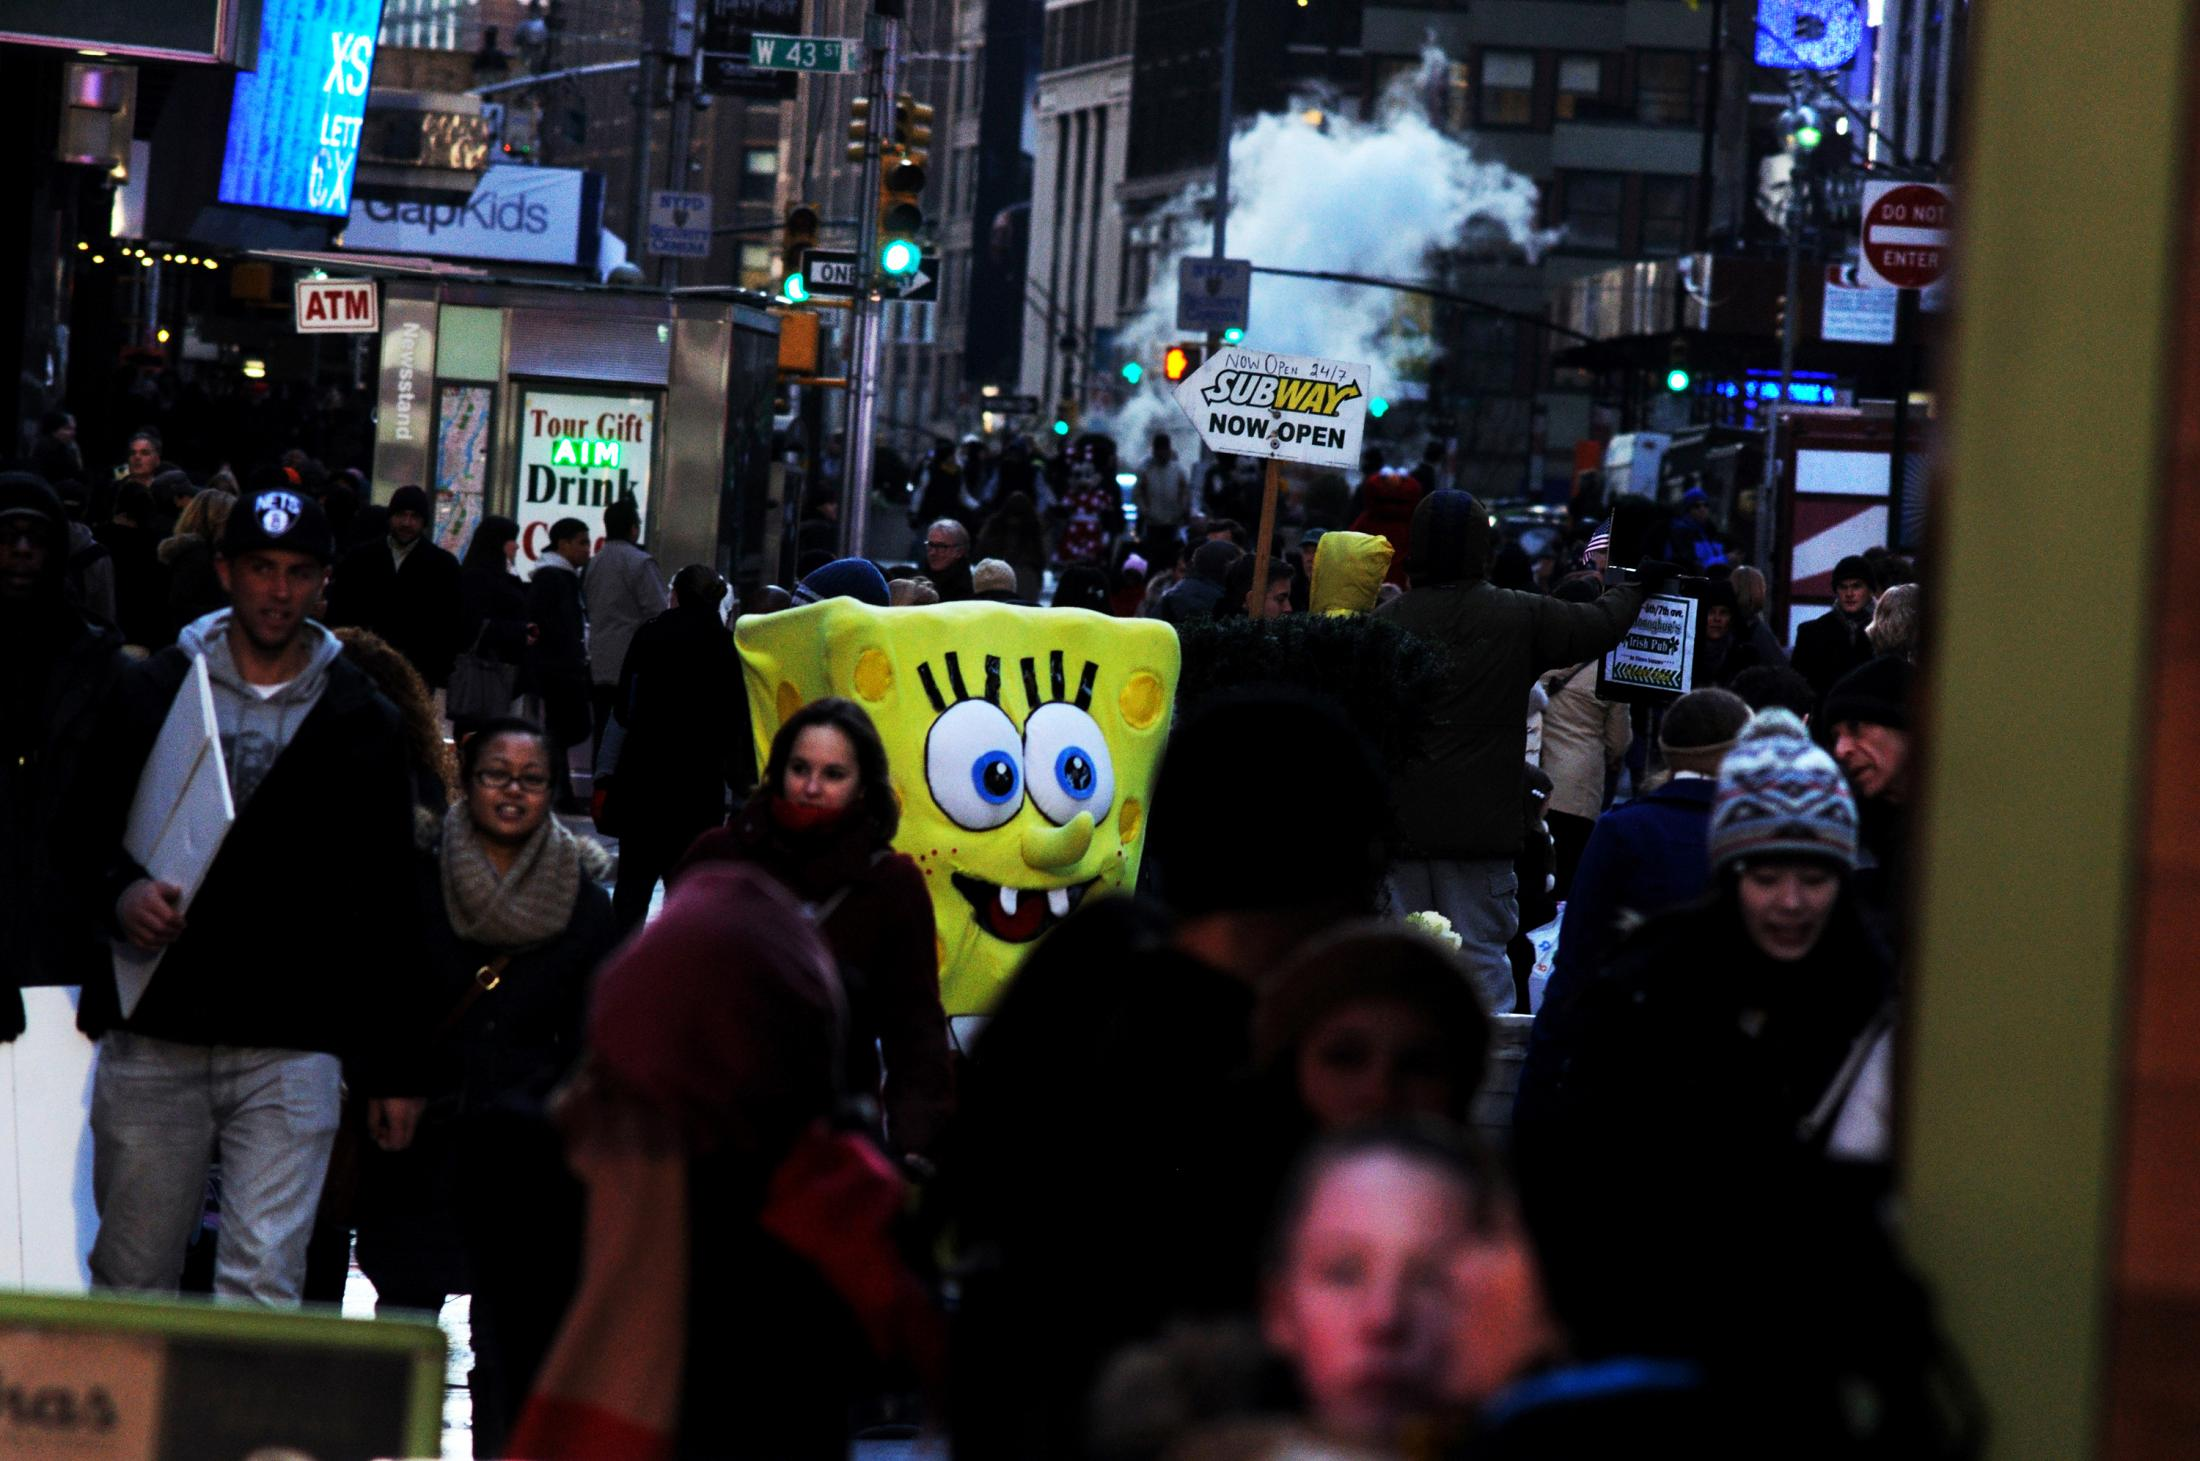 New York, UNITED STATES ,Immigrant dressed up as Bob Sponge ask for donations after posing for pictures in Times Square. 2013 Joana Toro.